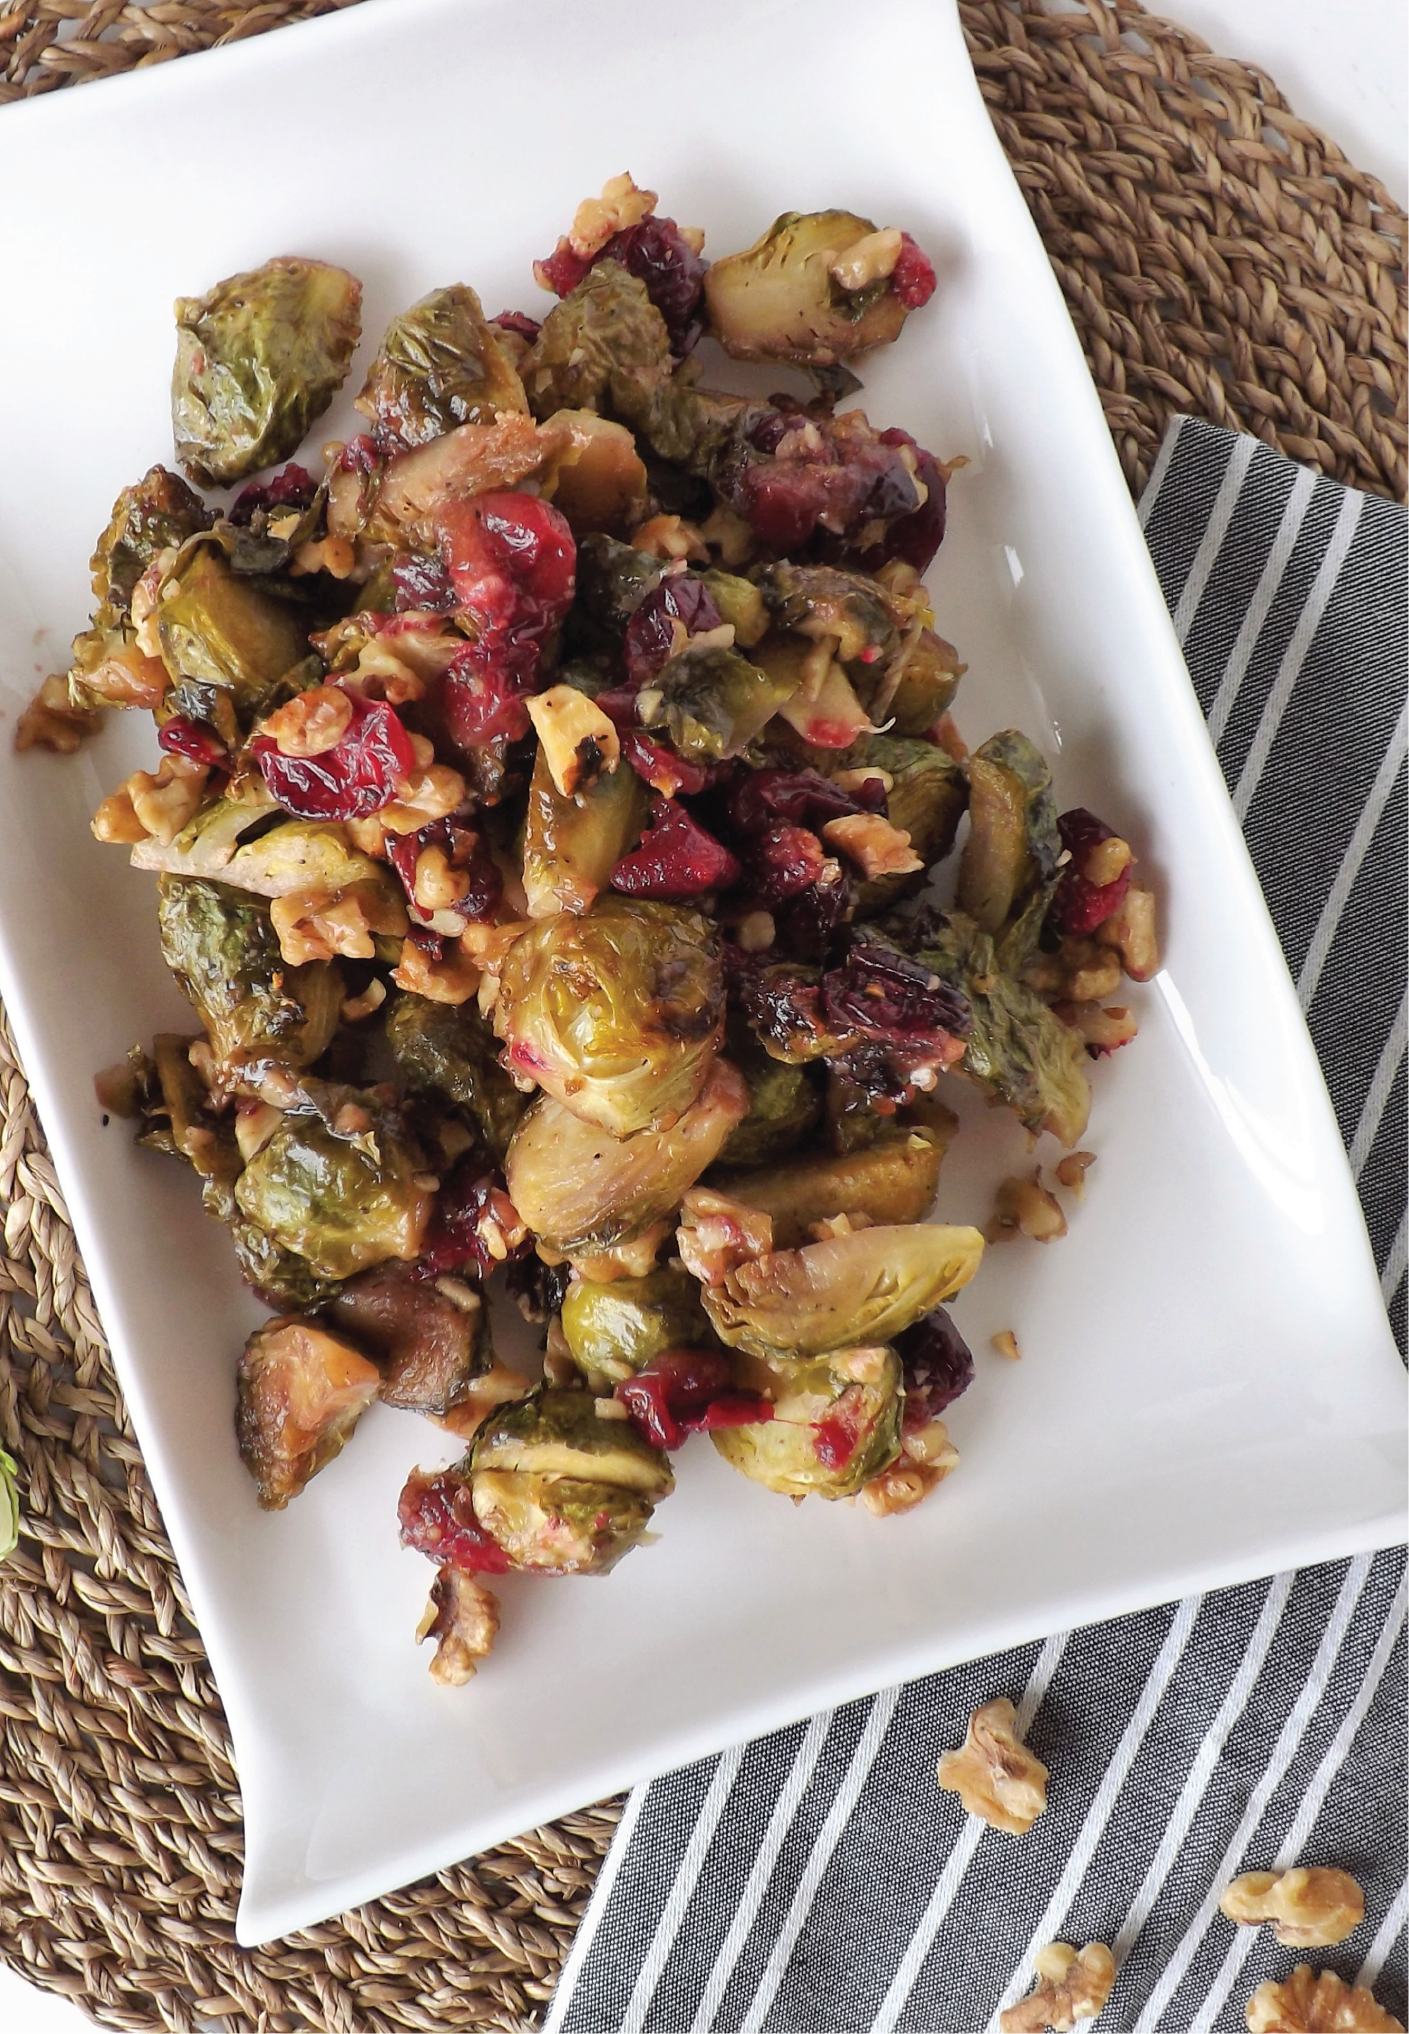 Plate of finished dish - Maple Dijon Roasted brussel sprouts with walnuts and cranberries.